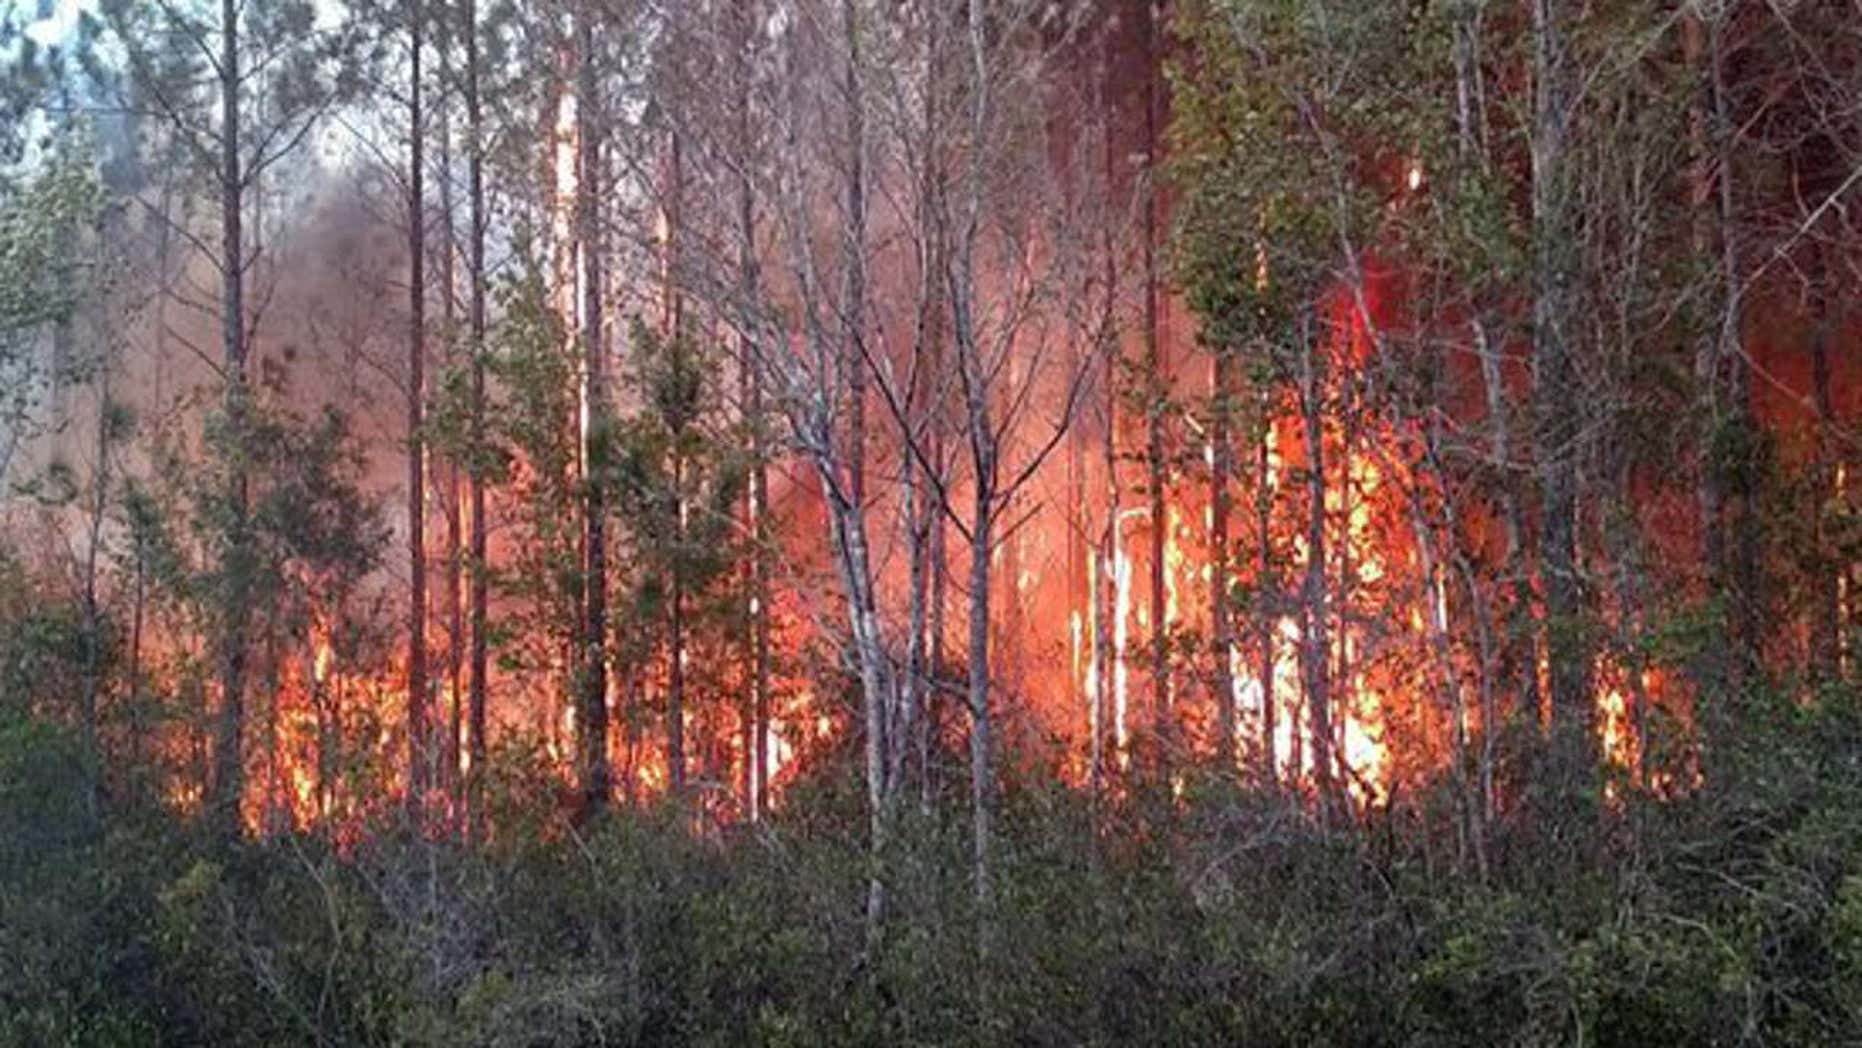 A Florida man burning books in his yard caused a 700-acre brush fire which destroyed two buildings, damaged six homes and nearly 20 sheds and barns, officials said Thursday.